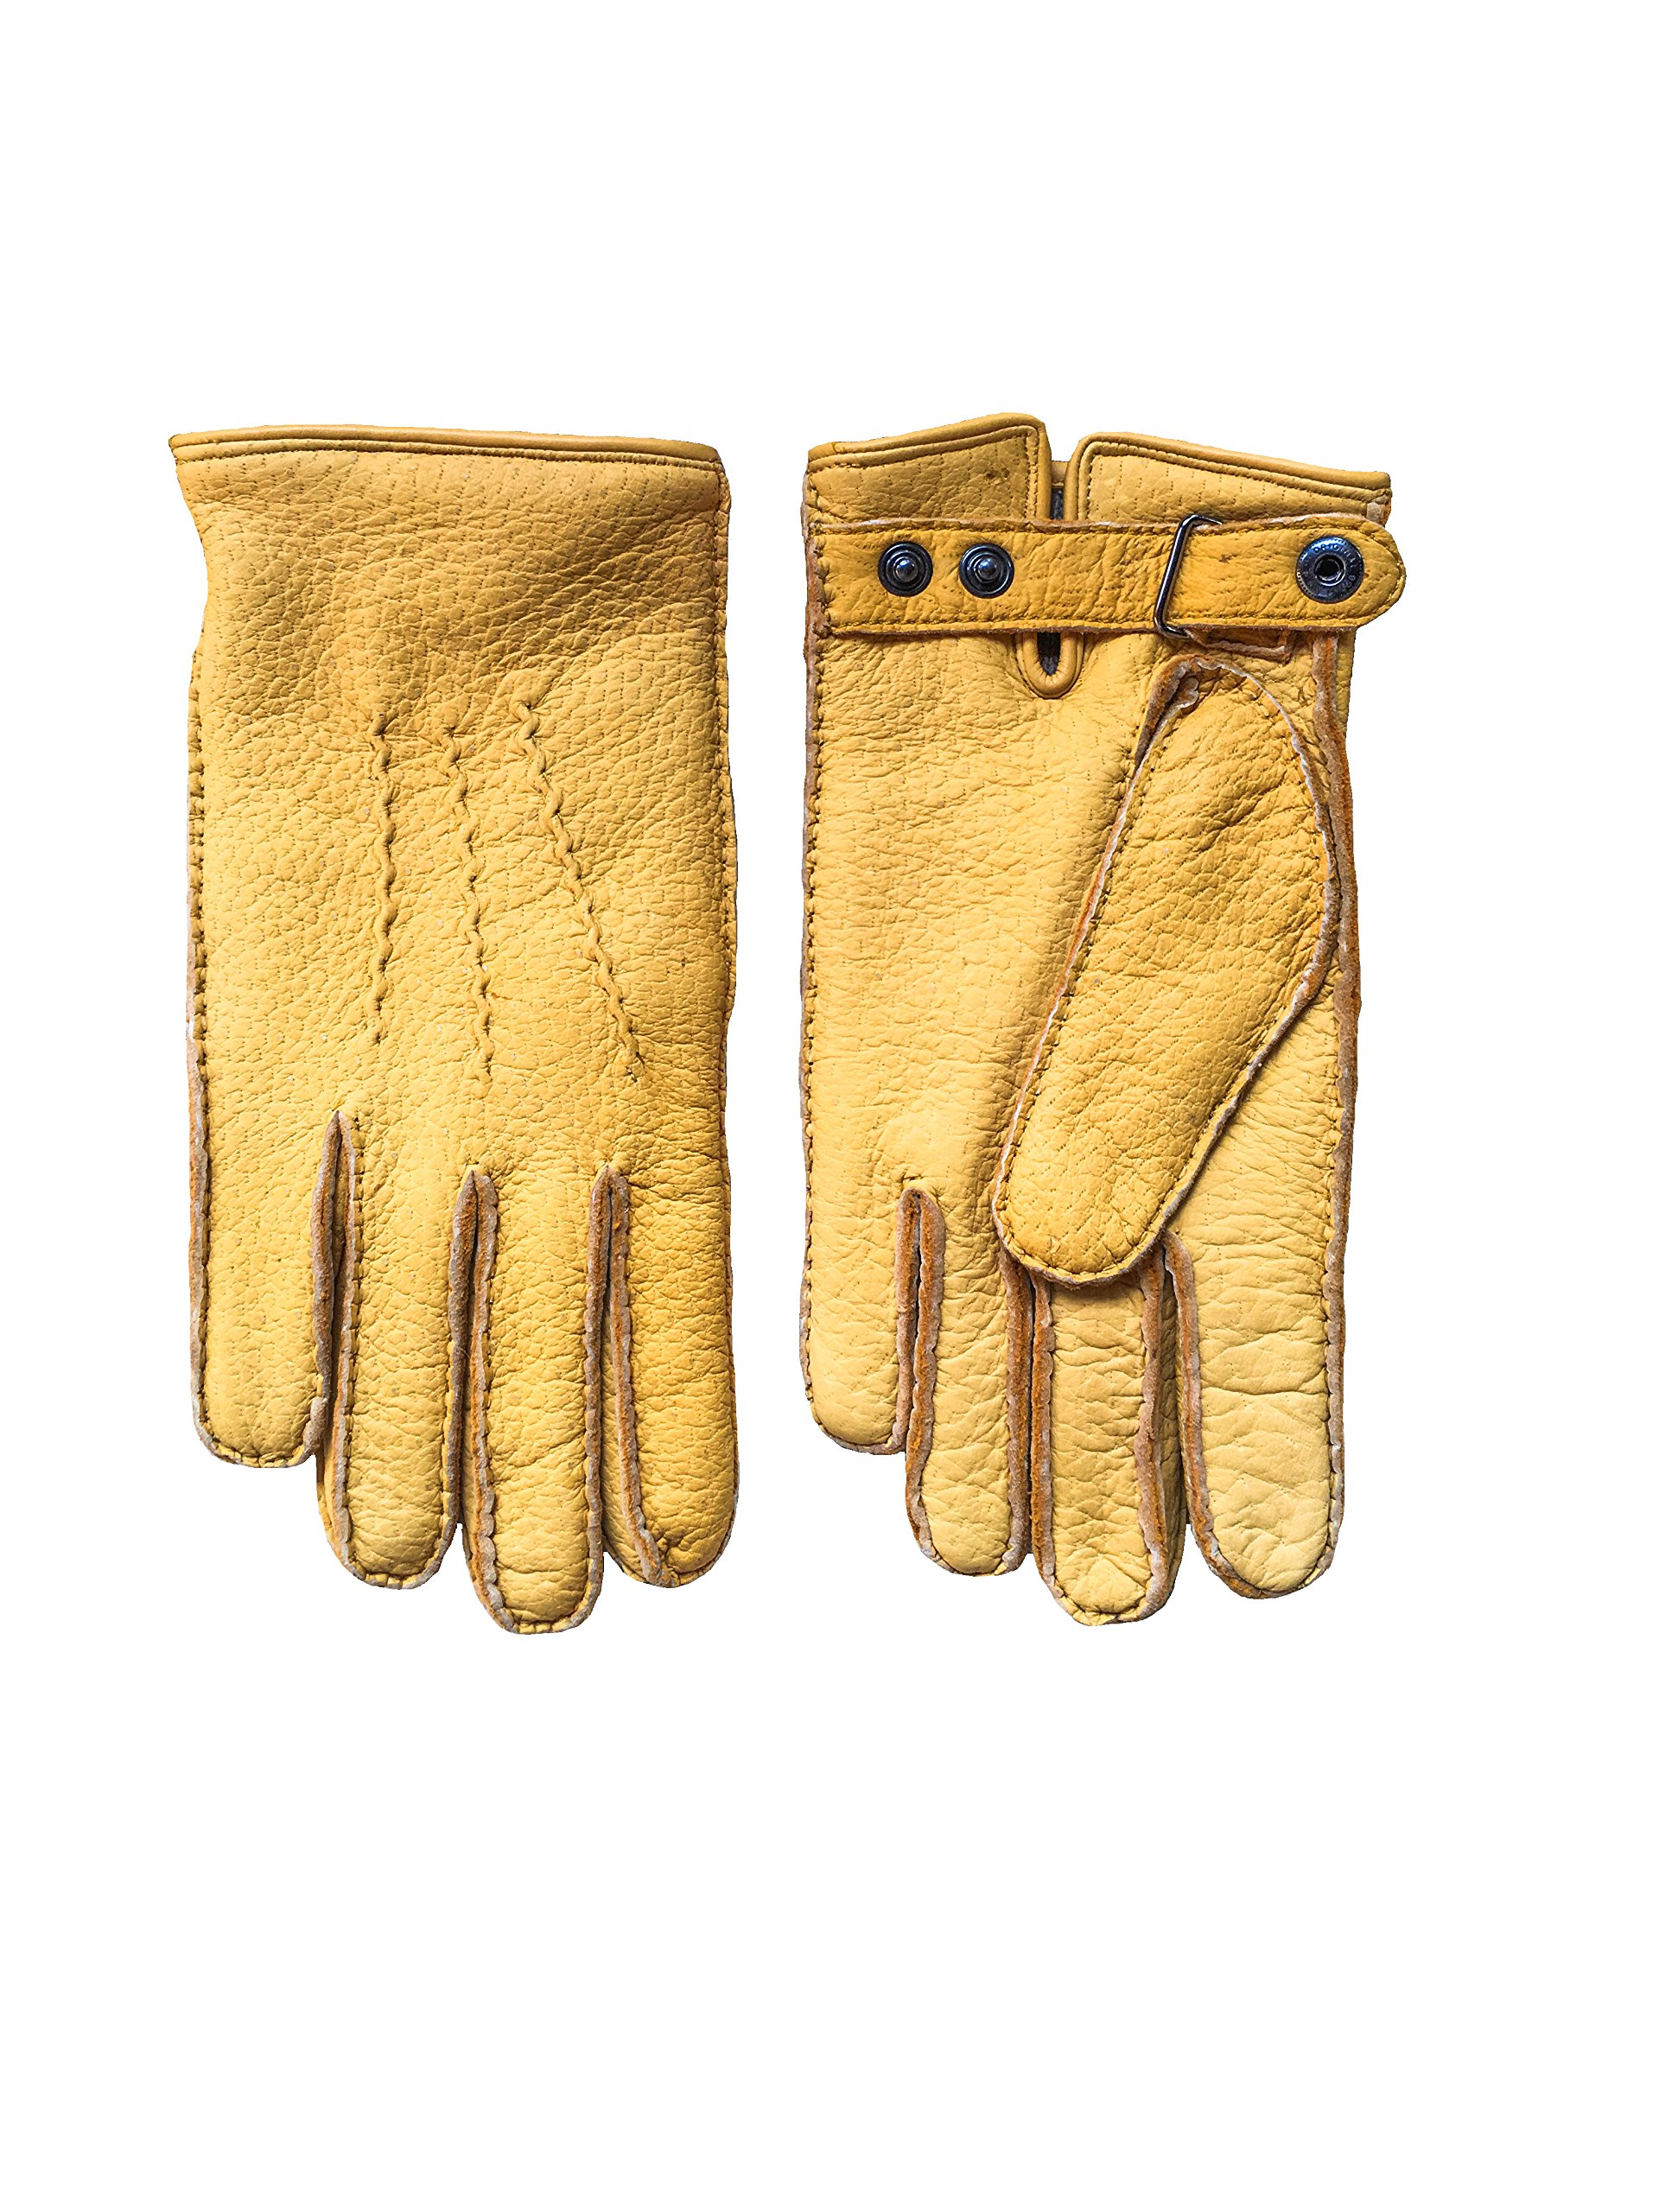 Men's warm peccary winter leather gloves with button closure in color yellow by Hungant (8.5, Yellow)